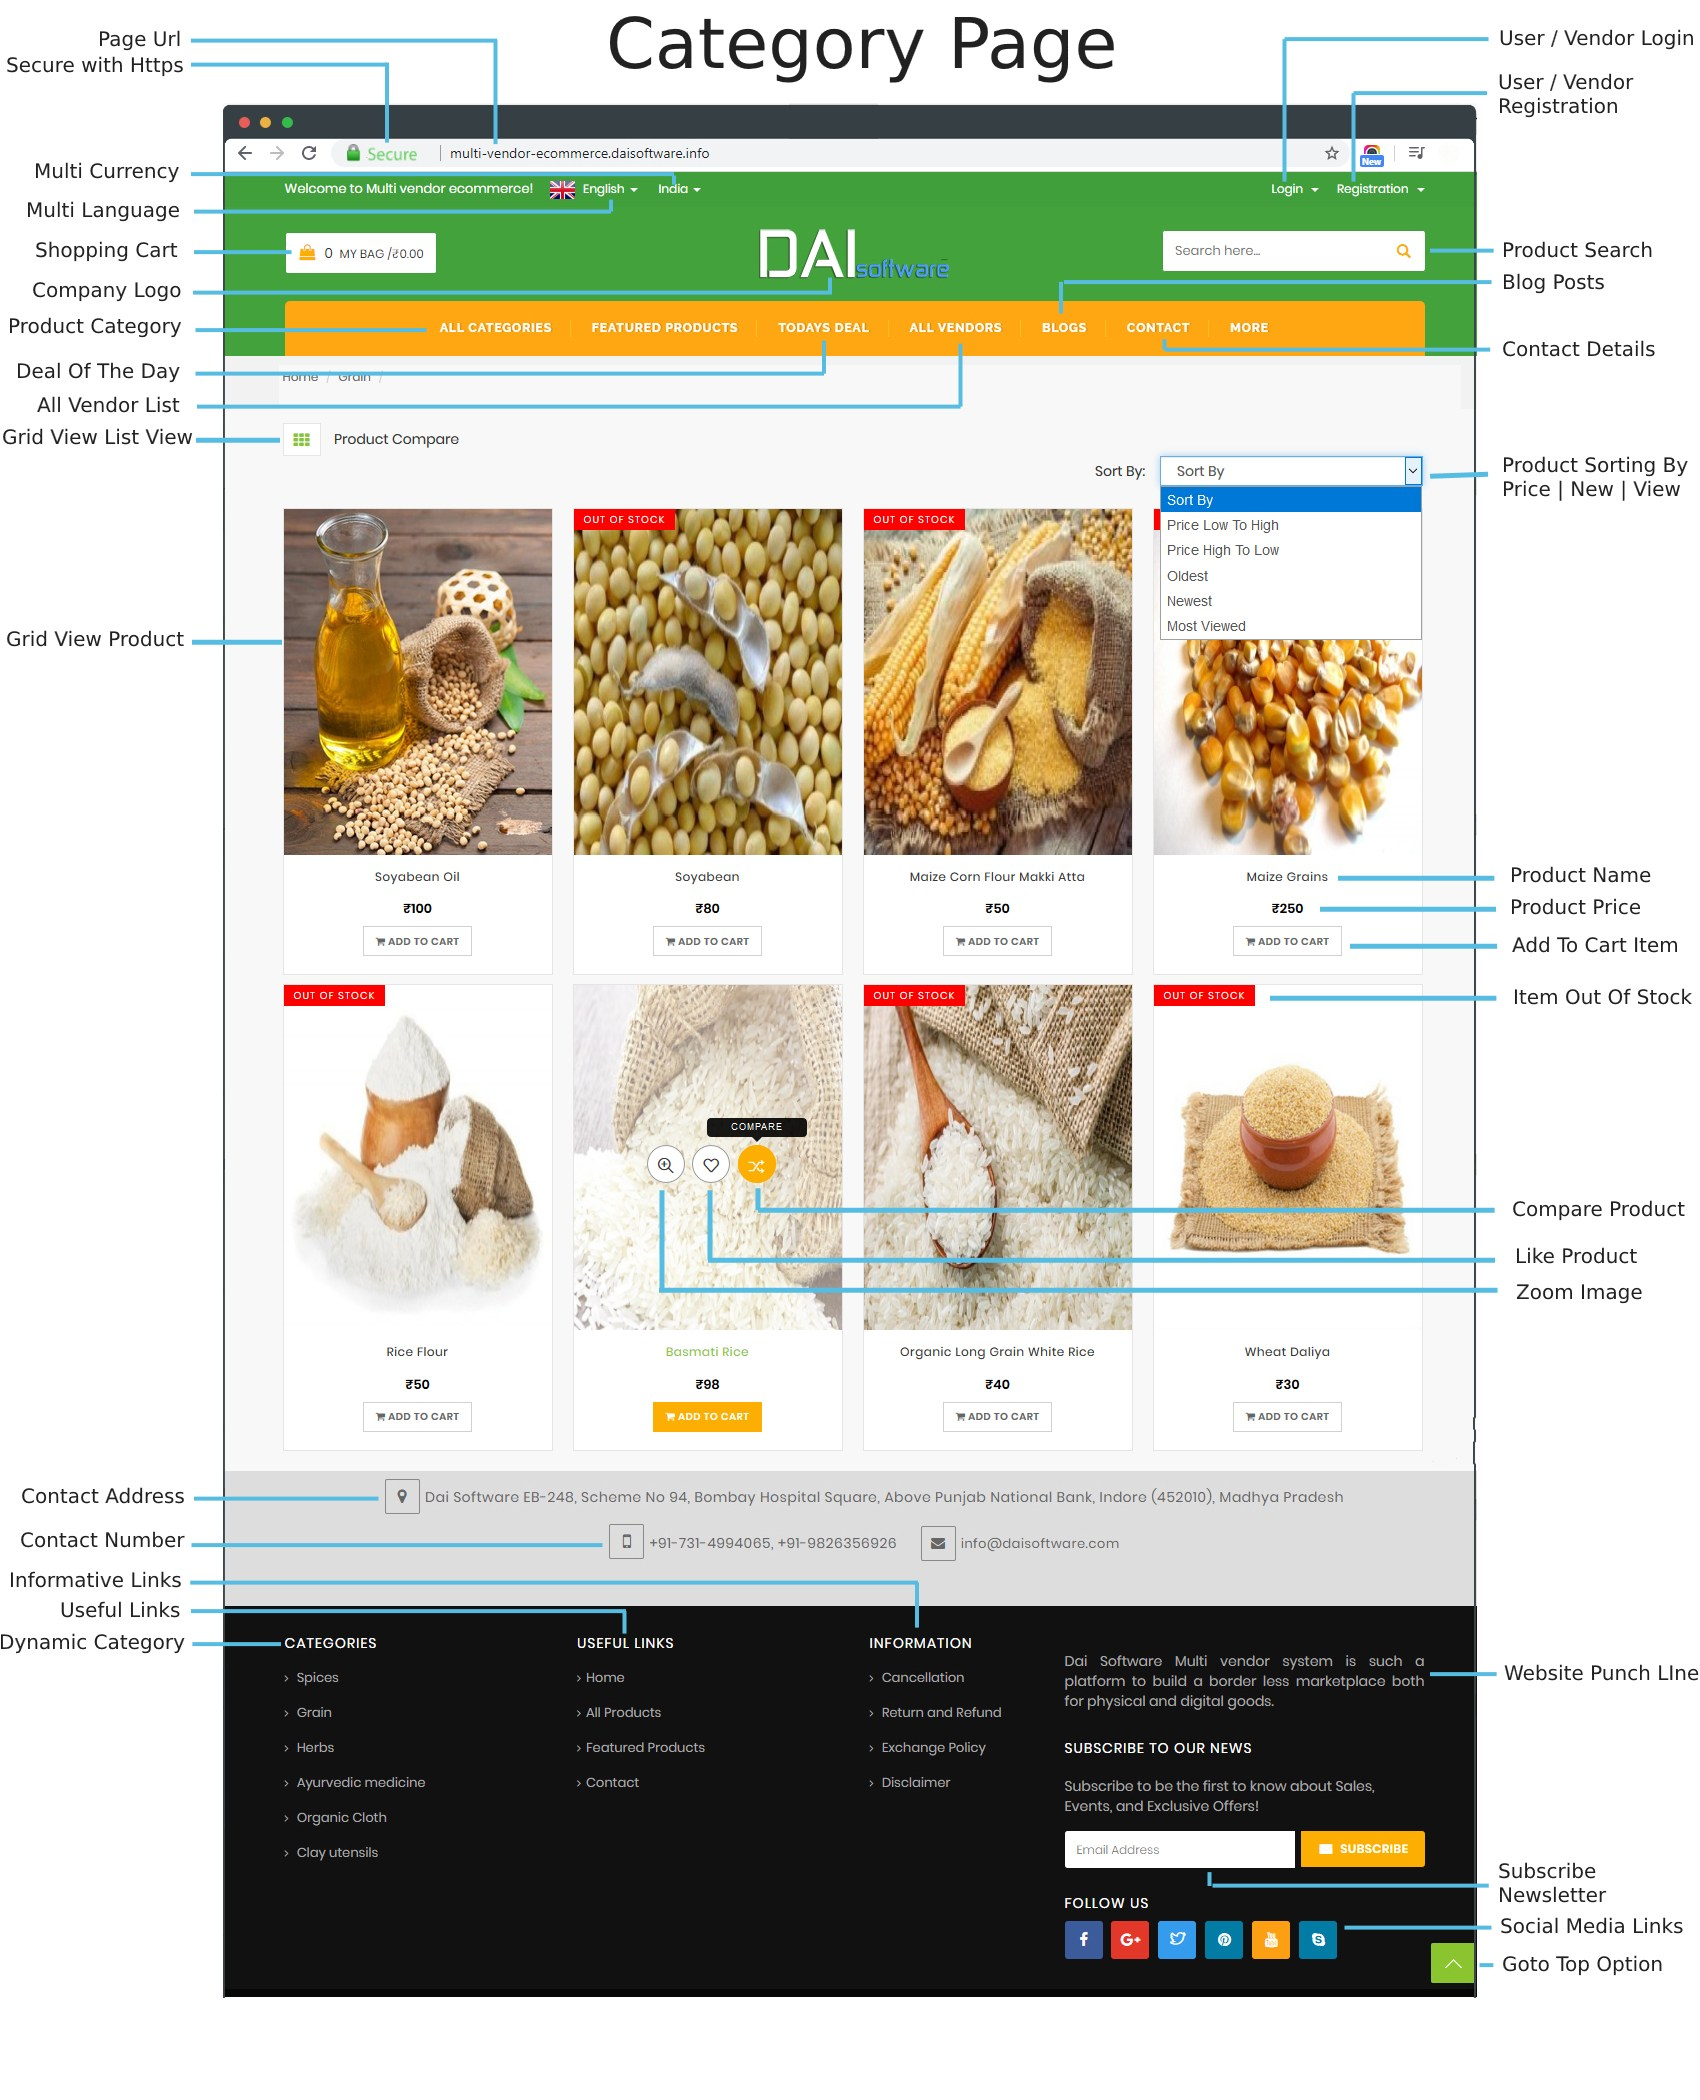 Essential Features of Multi Vendor eCommerce Site Category Page